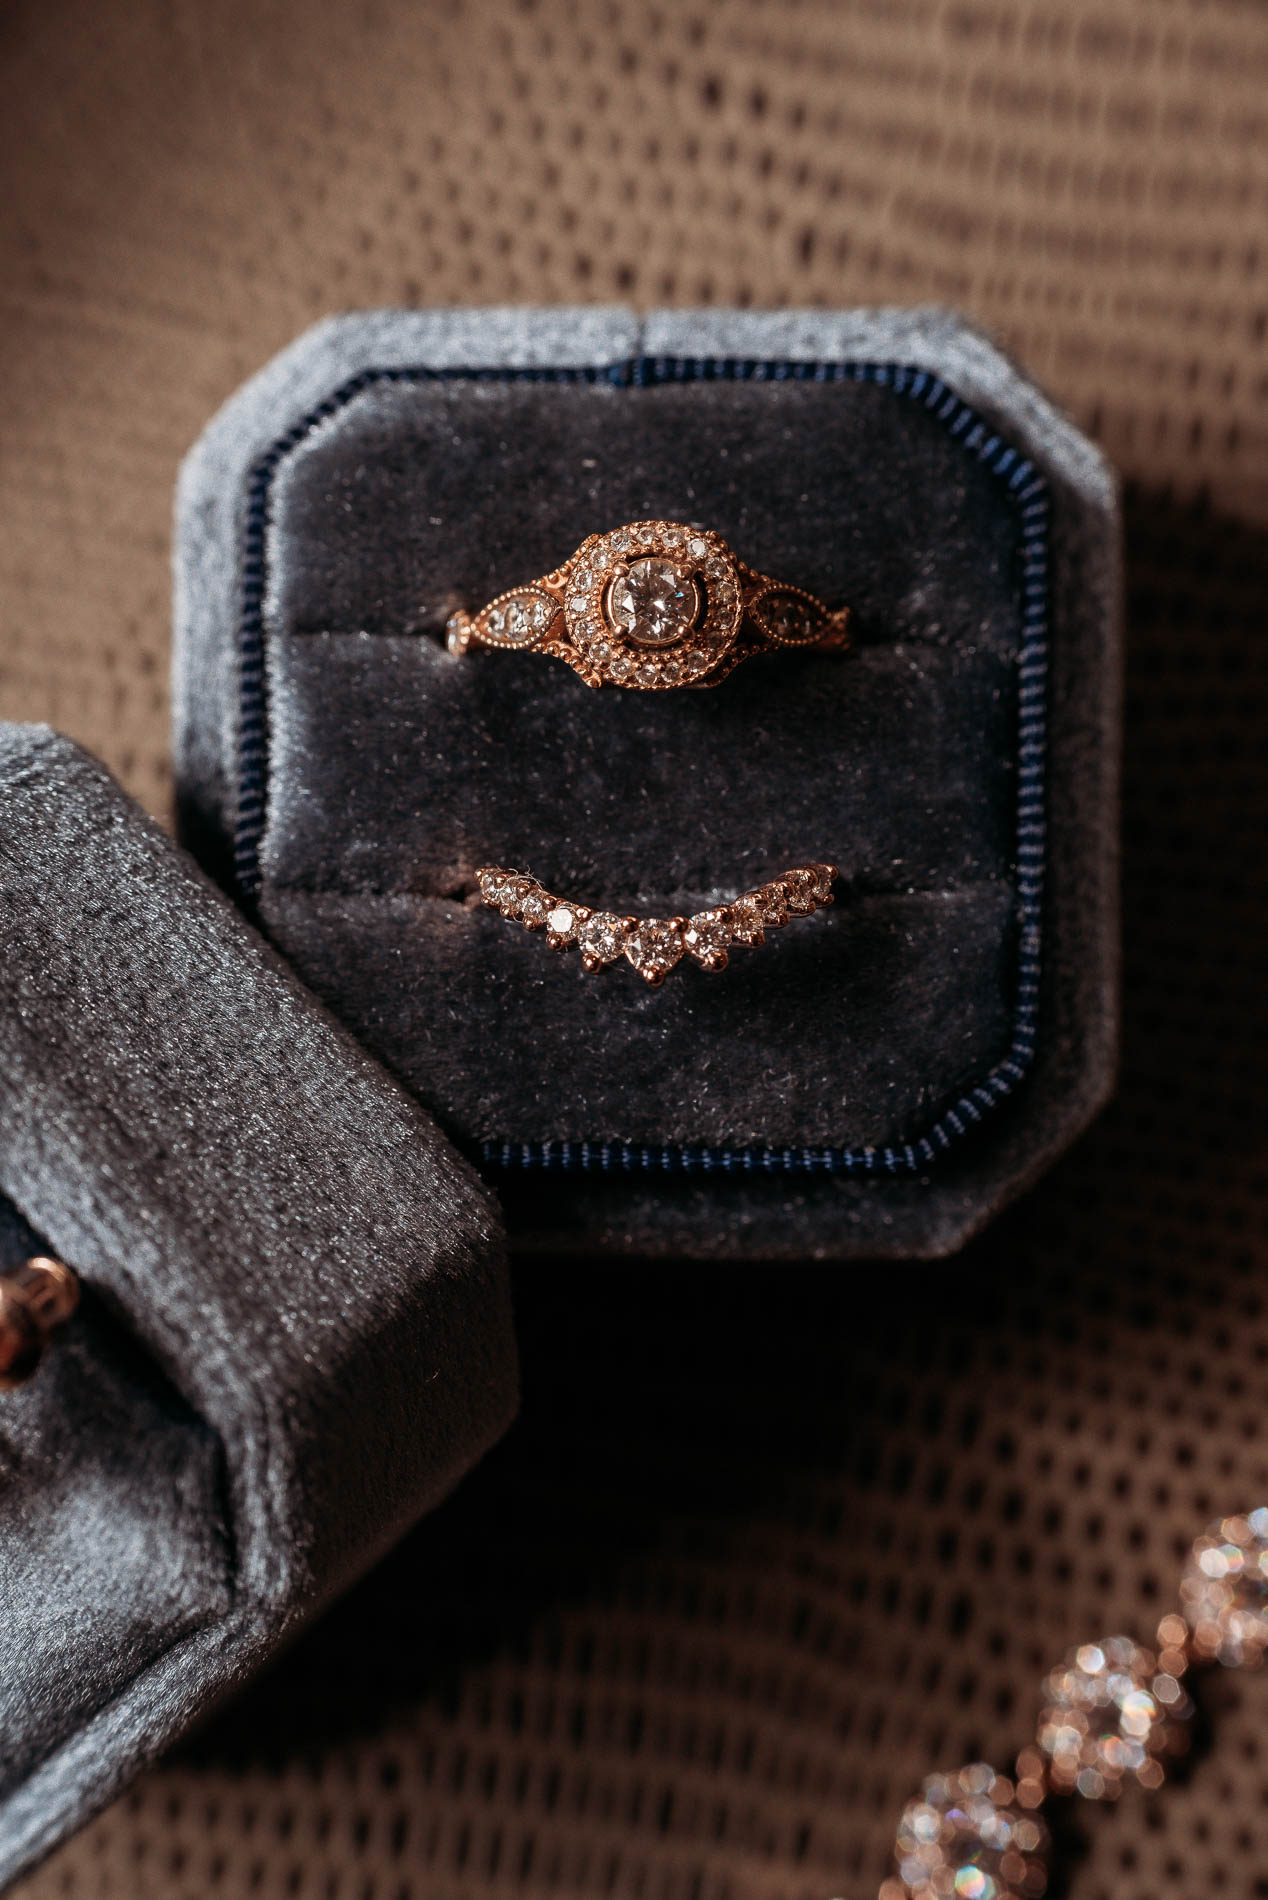 22 Meaningful Items to Have Photographed Before Your Wedding